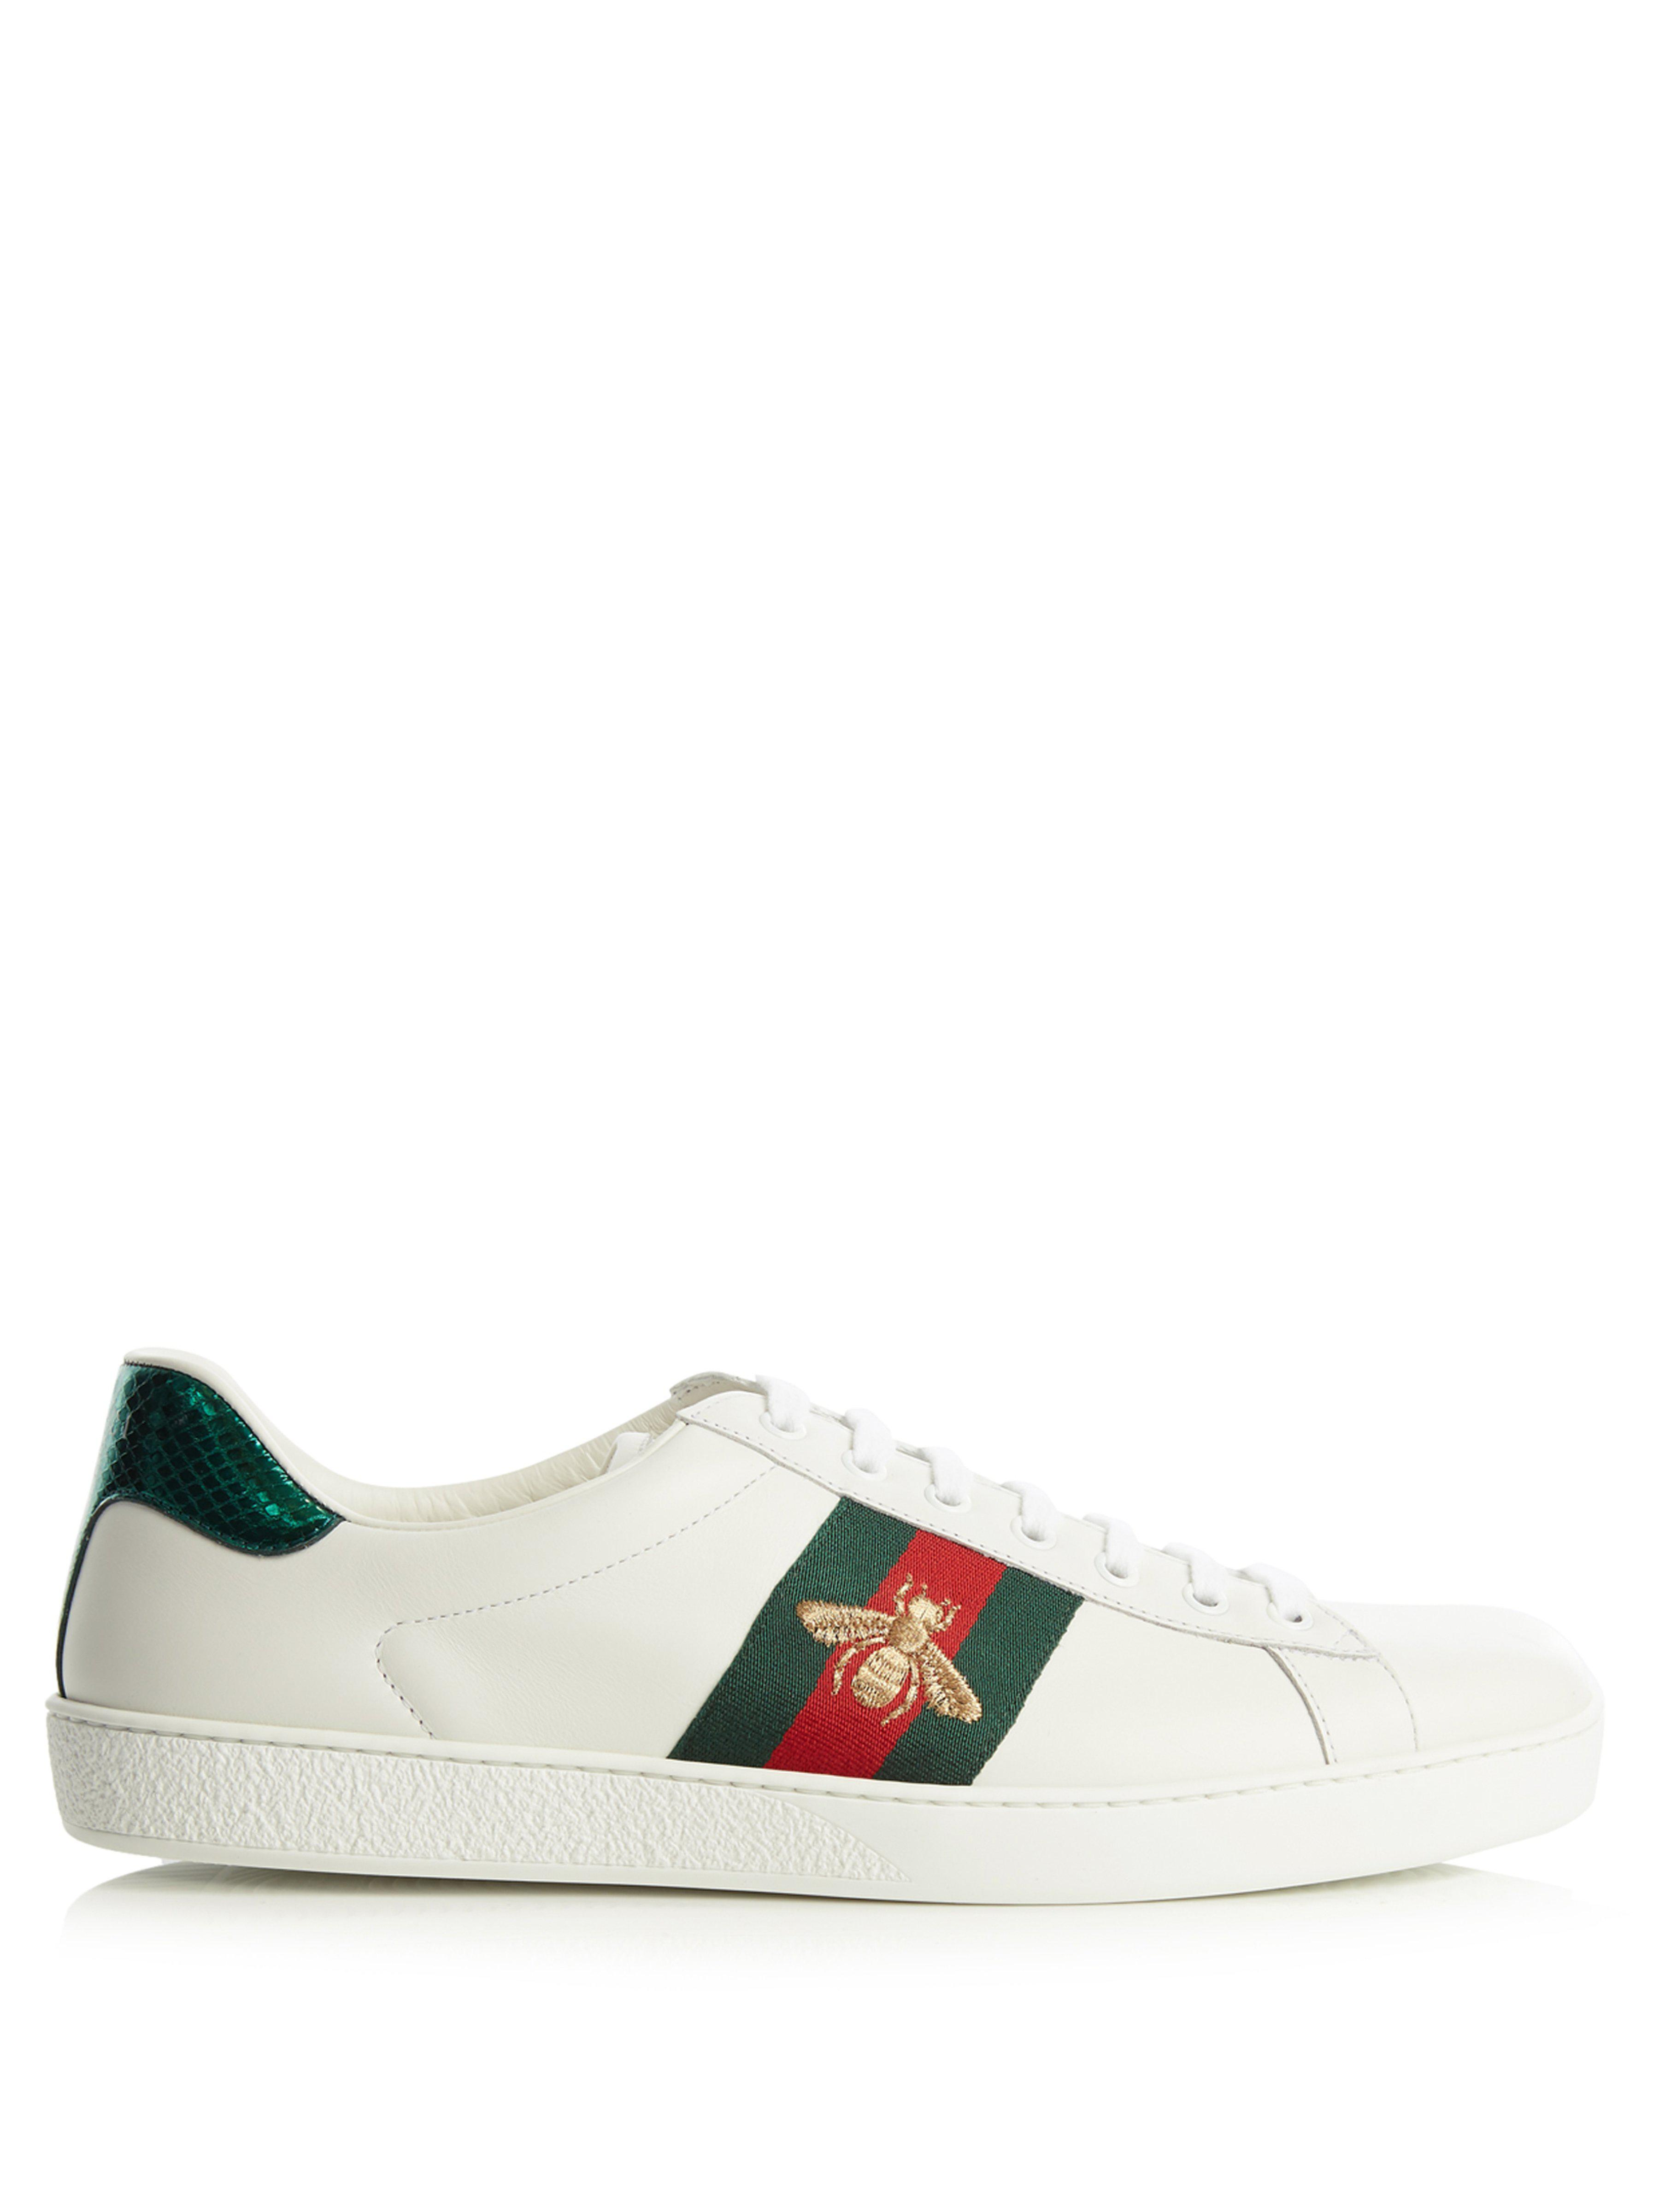 73ef3b8ce03 Gucci Ace Bee Embroidered Low Top Leather Trainers - Save 33% - Lyst